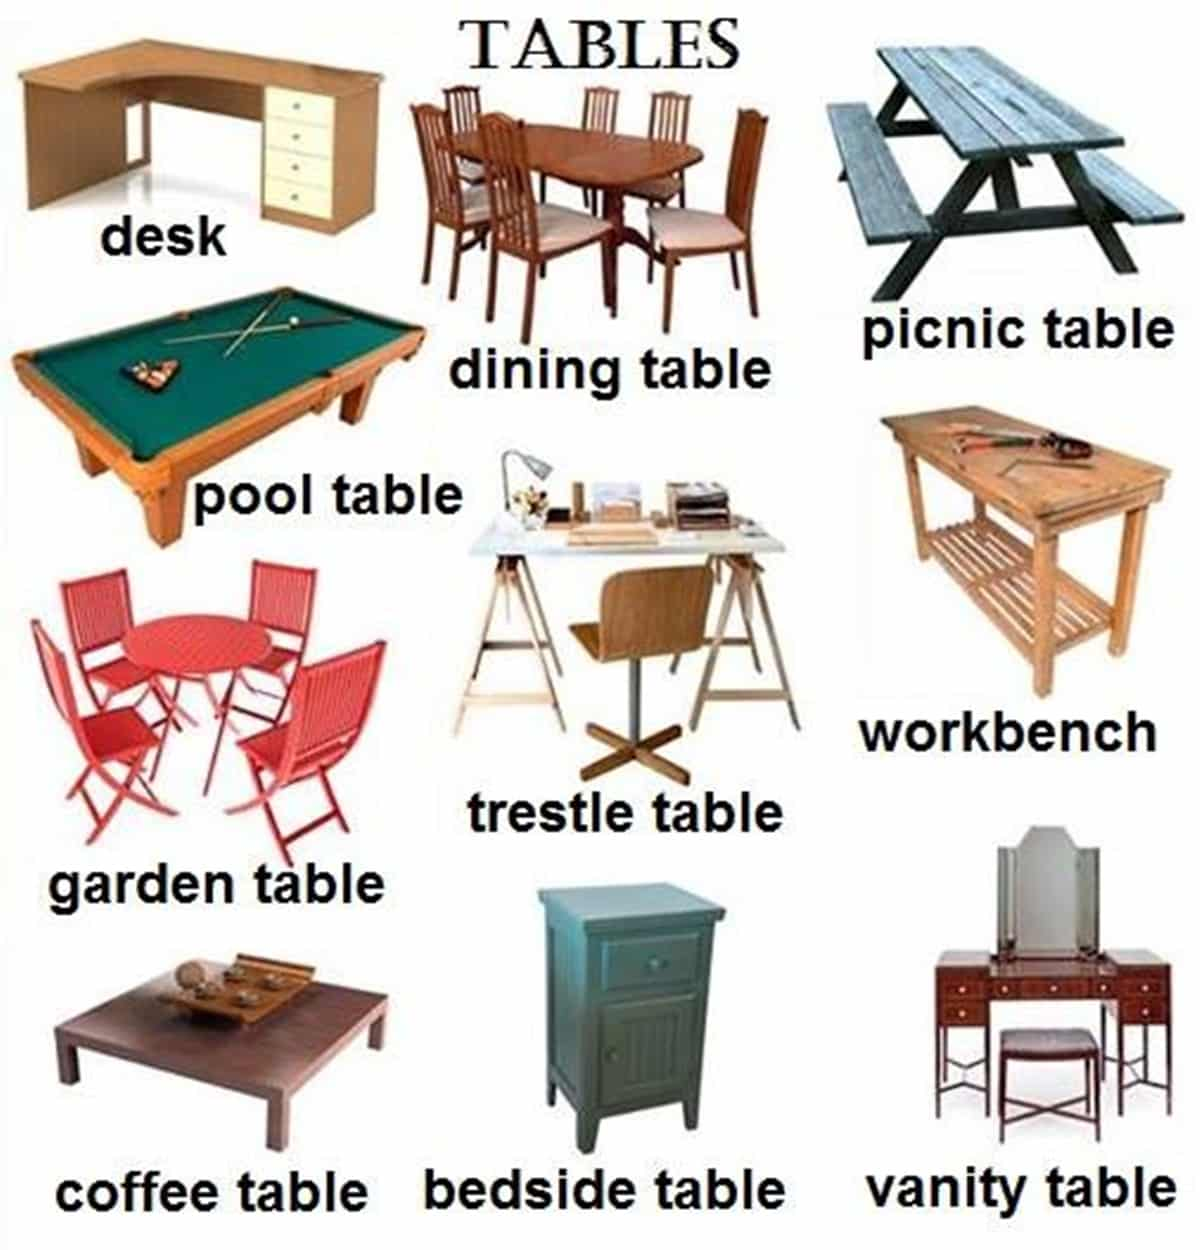 Furniture vocabulary 250 items illustrated esl buzz - Furniture picture ...